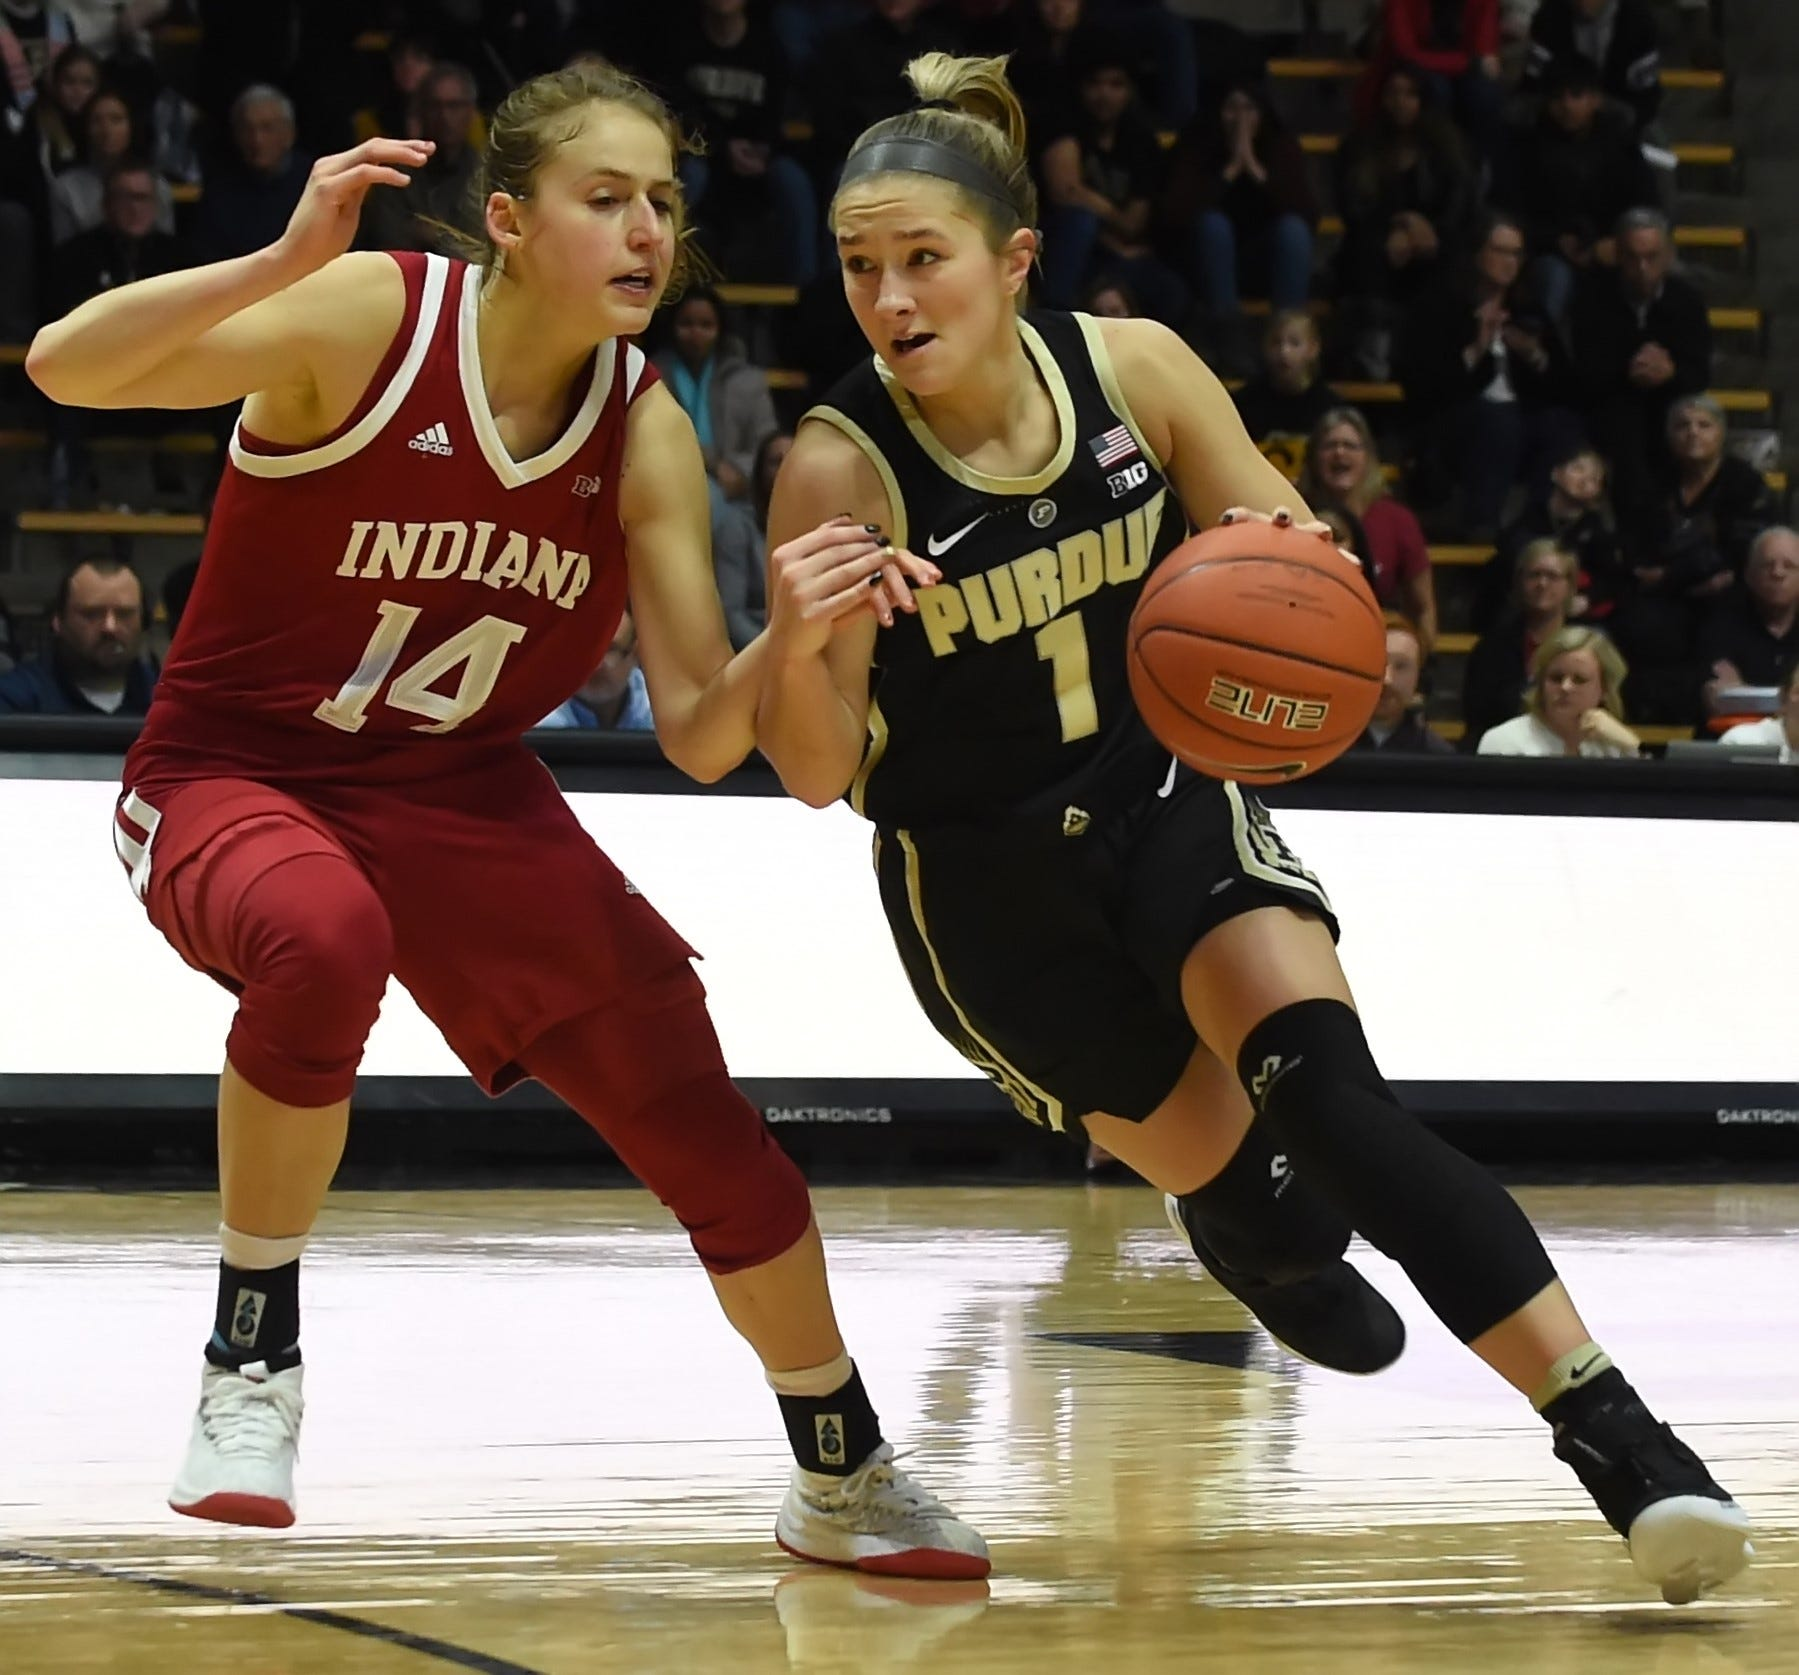 Sophomore guard Karissa McLaughlin on a fast break at the top of the key against Hoosier junior Ali Patberg Sunday at Mackey Arena.